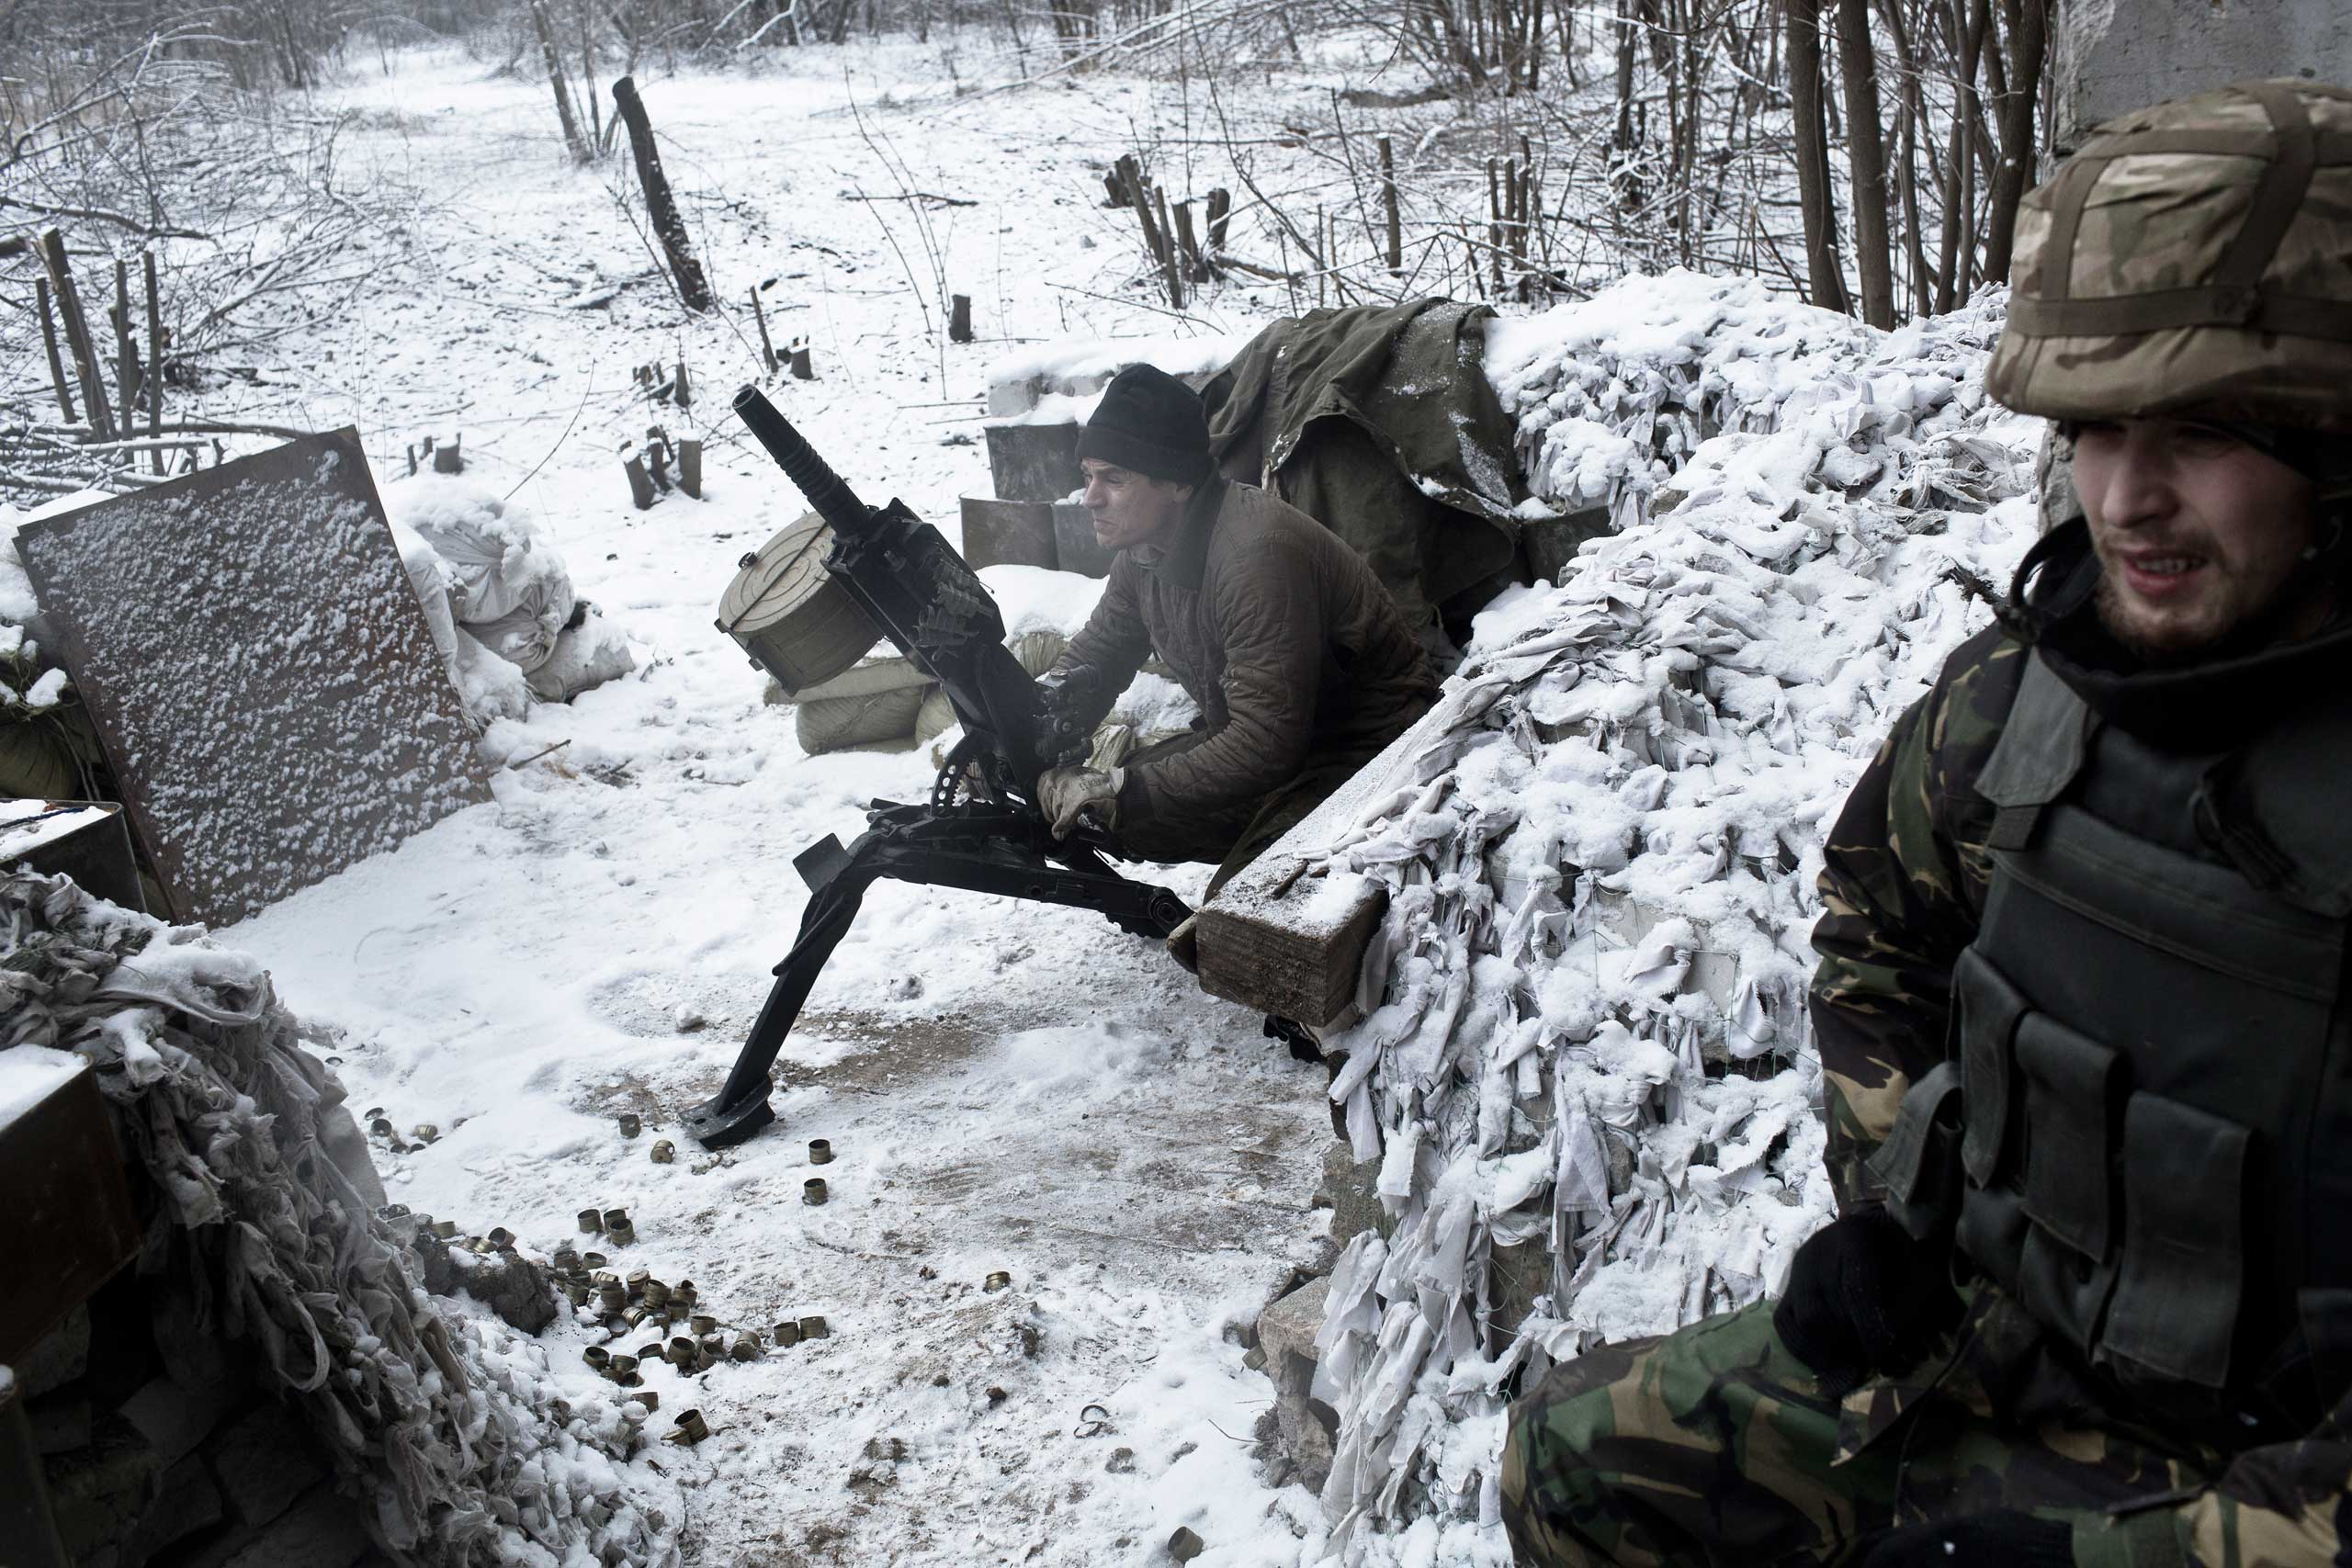 Members of the right wing Transcarpathian Sich battalion have taken over a bombed-out mine as their base on the frontline in Pisky, Ukraine, Feb. 10, 2015. They fire light artillery and machine guns at enemy positions seeking to open up a new flank against the separatists.